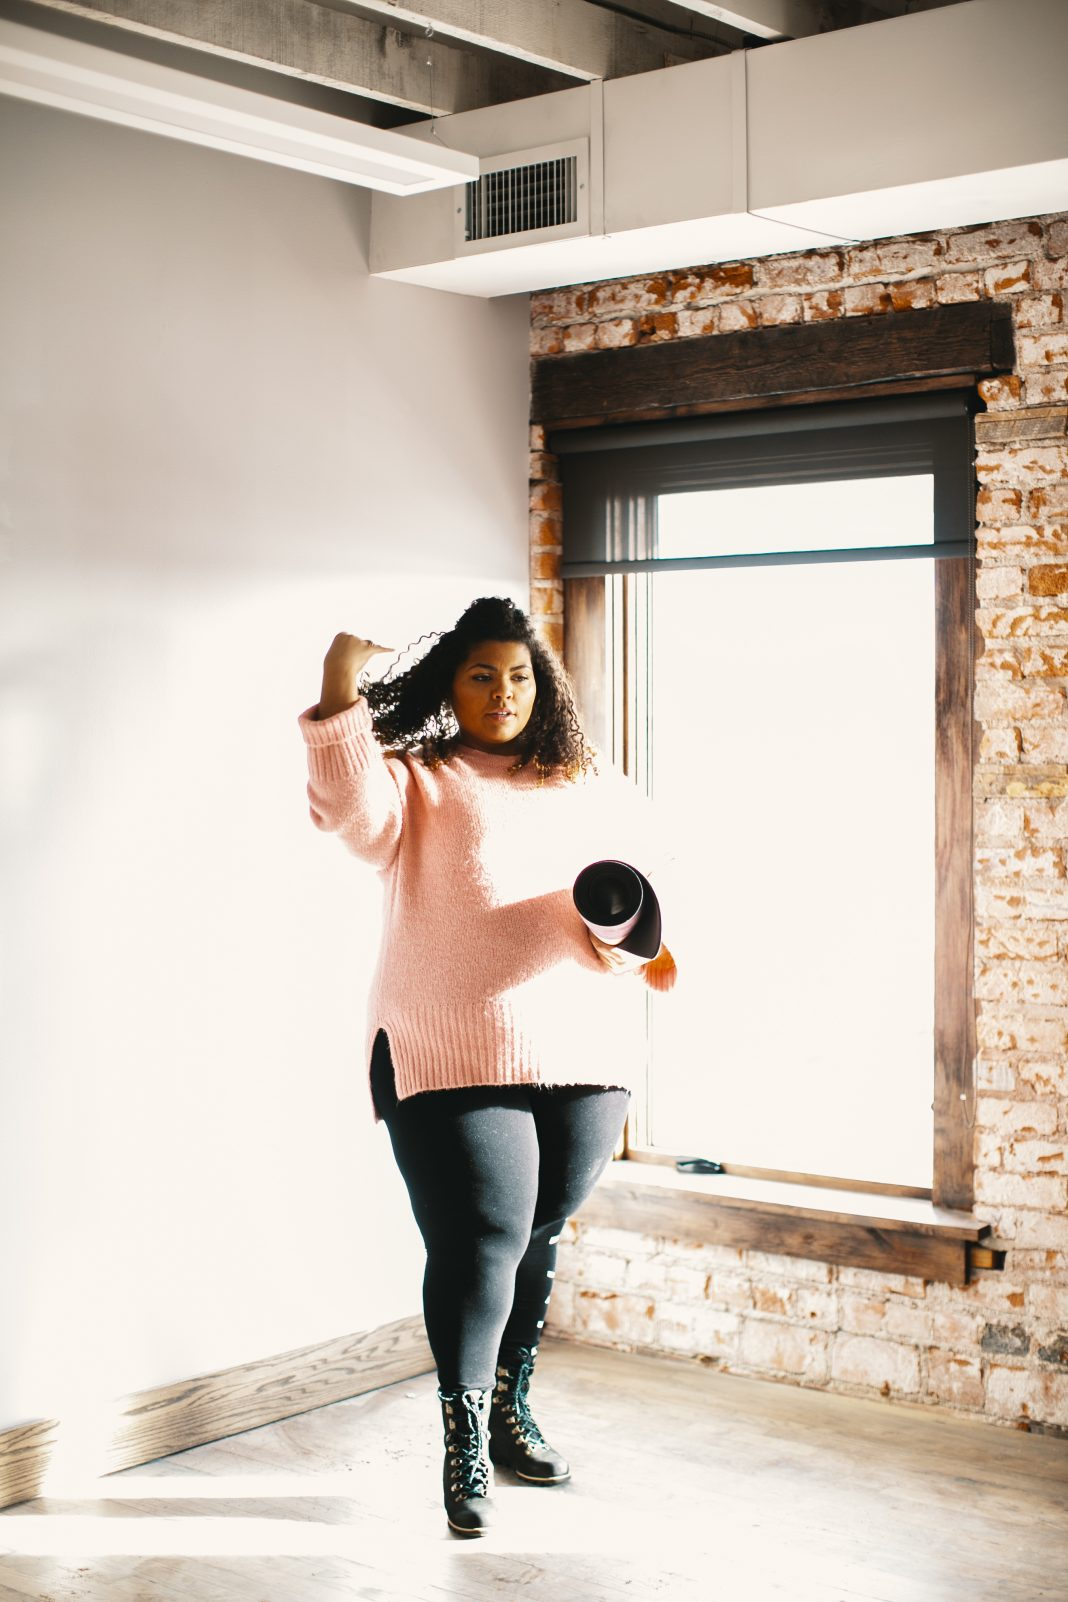 We often follow our am yoga class with a post-workout brunch celebration. Cute oversized sweaters are the perfect winter workout-to-brunch outfit solution.